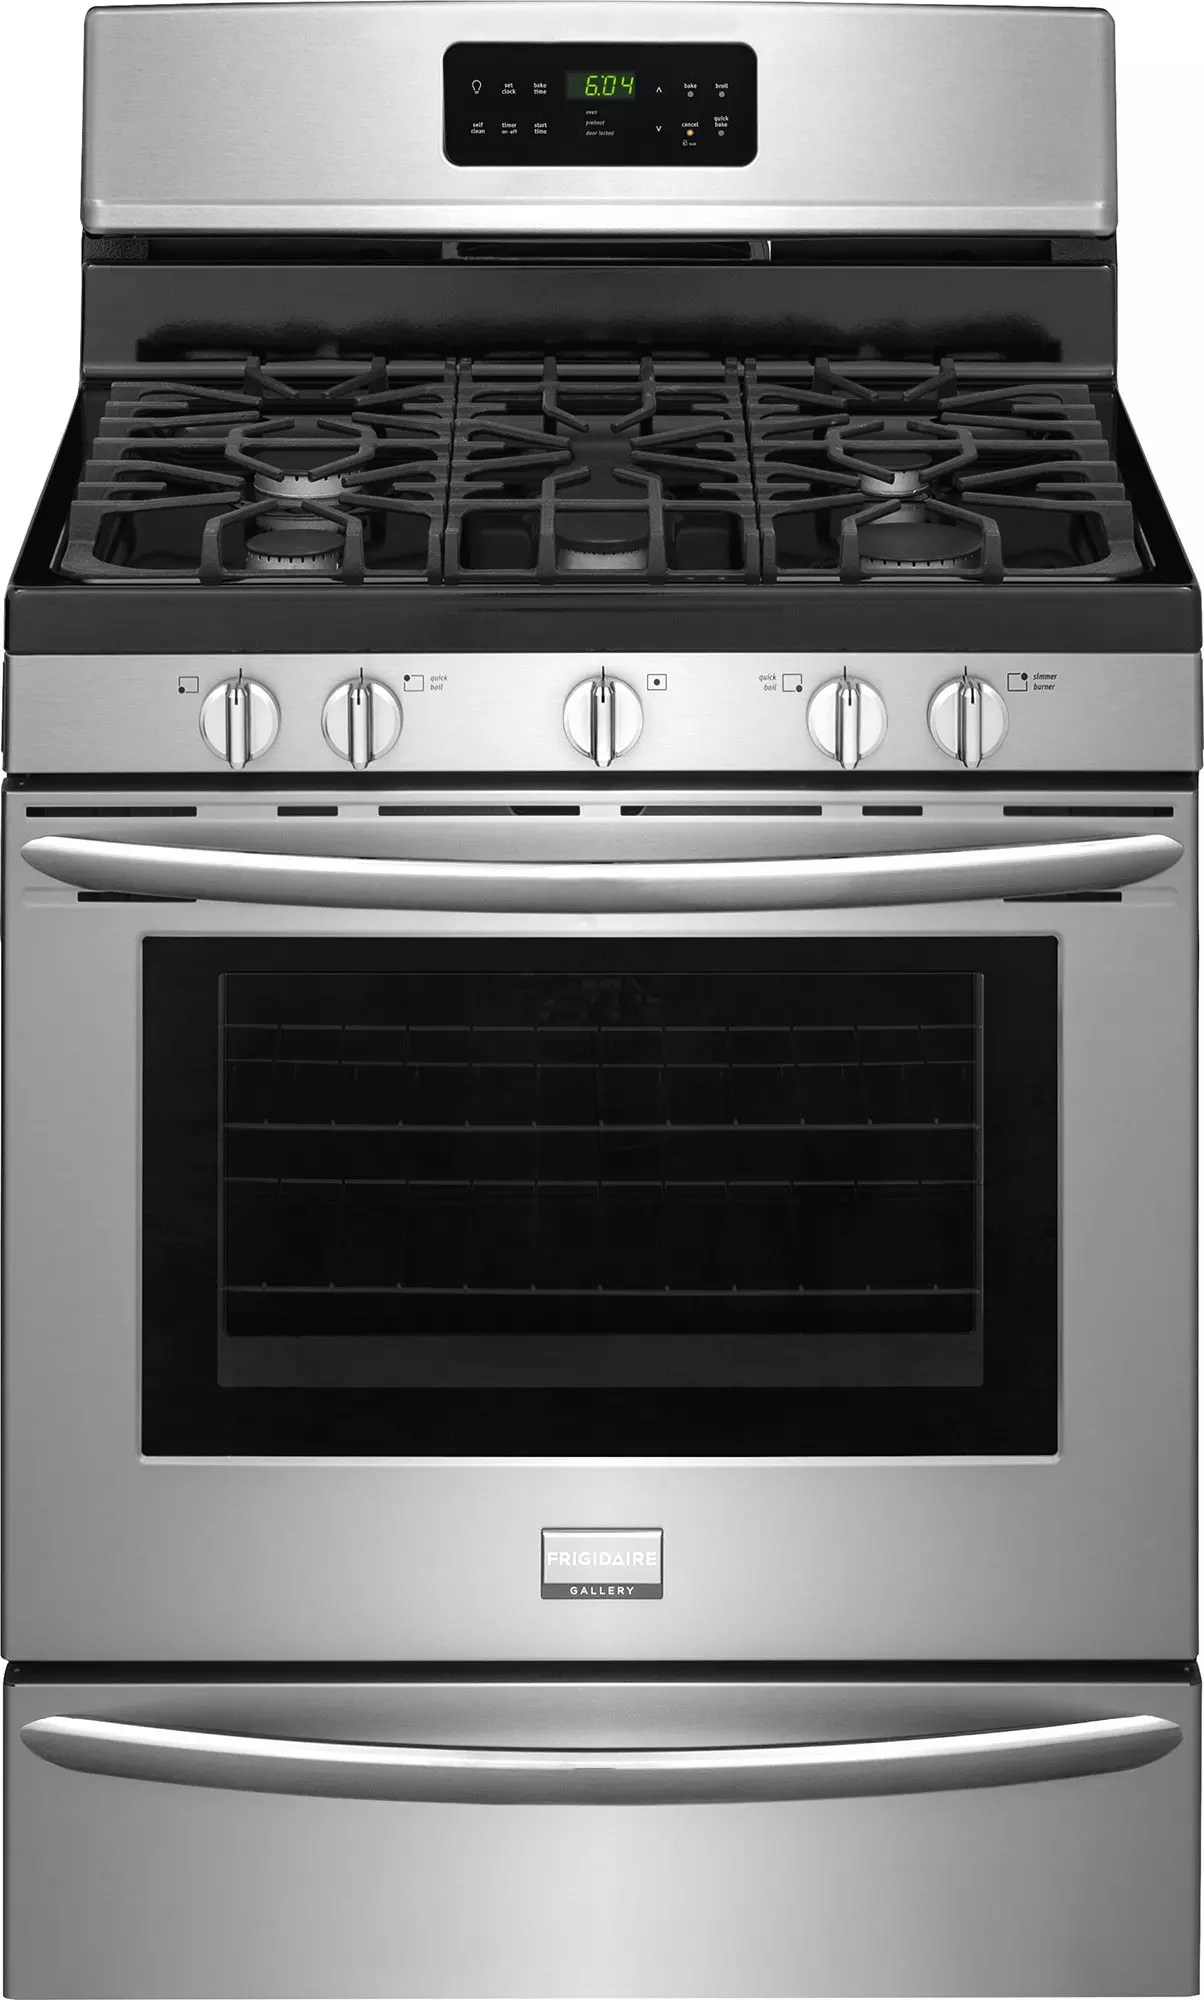 Cooktop Gas Stoves Frigidaire Dggf3046rf 30 Inch Freestanding Gas Range With